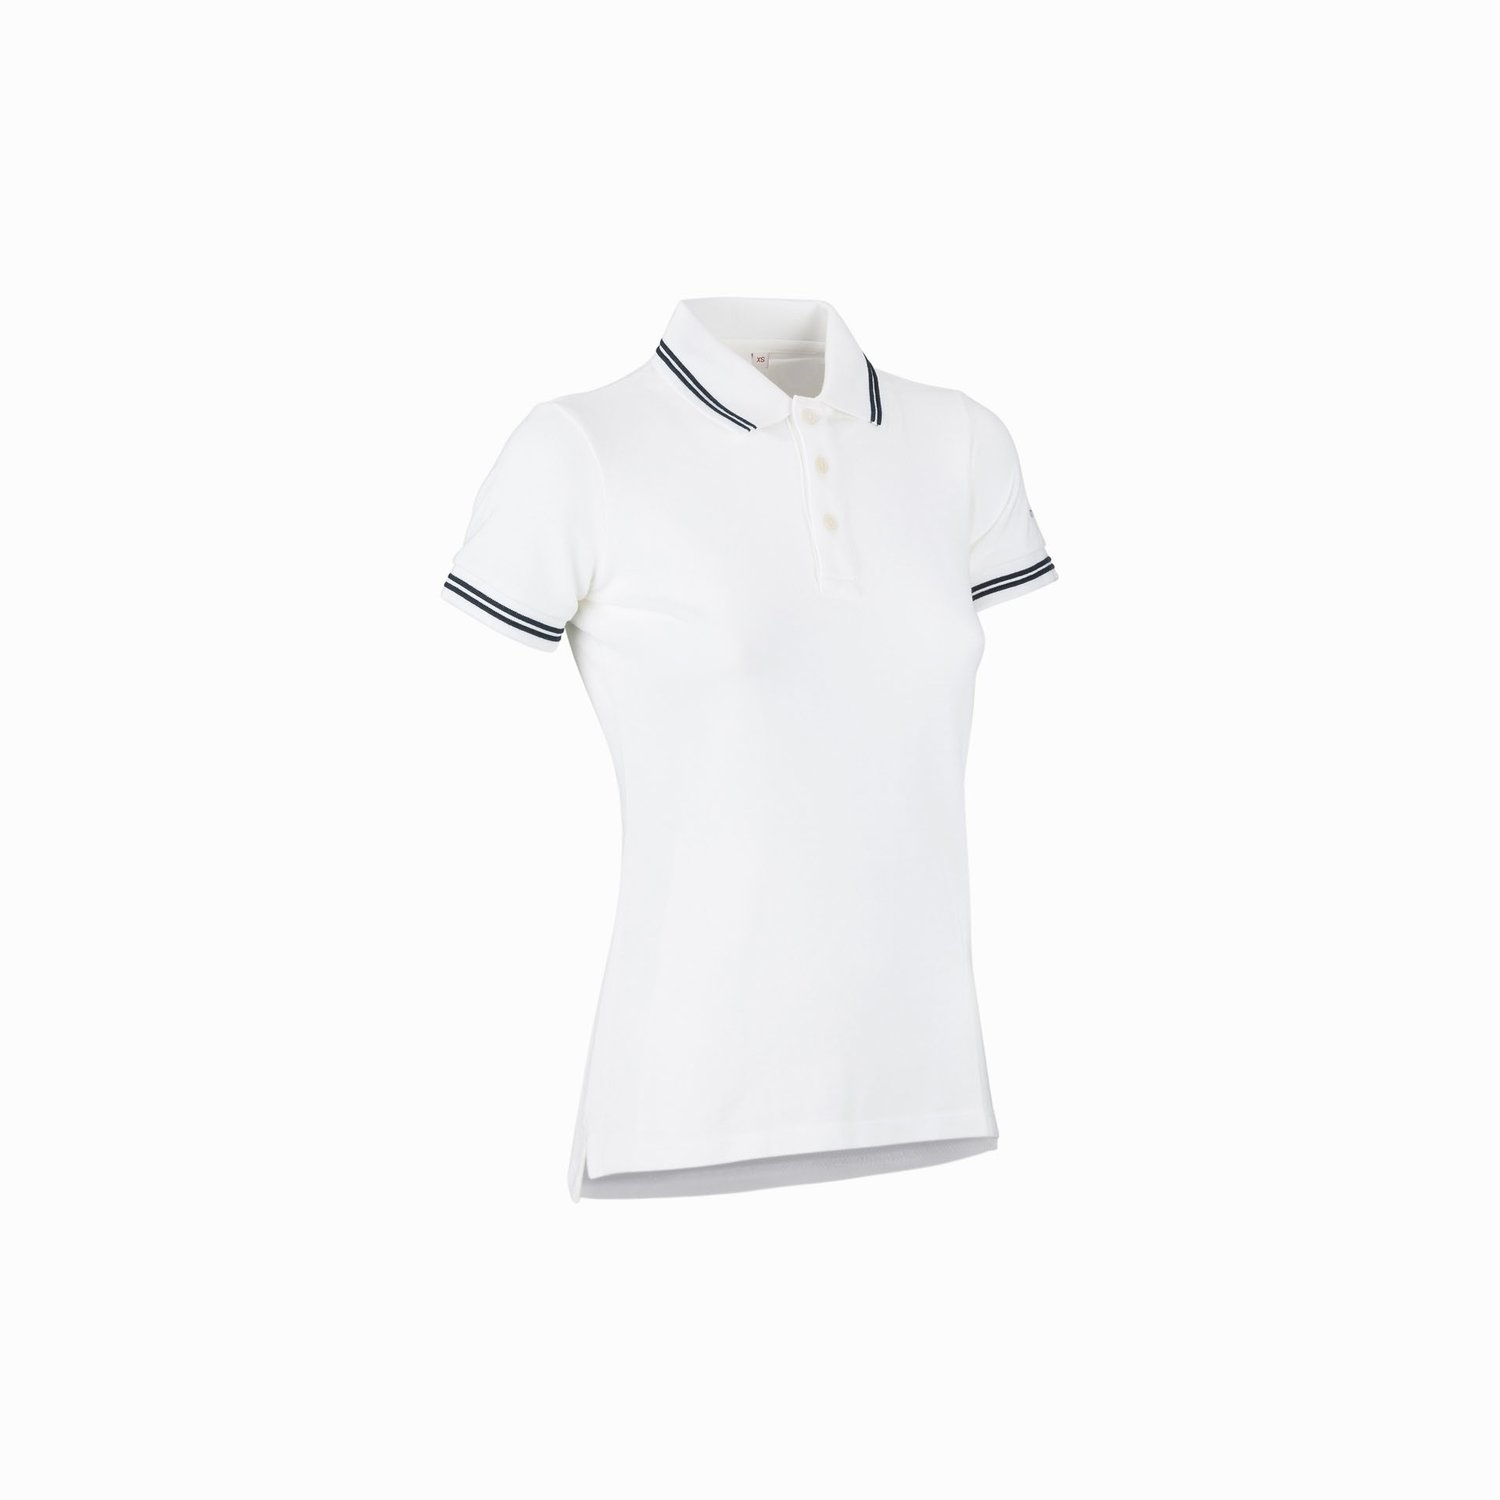 Polo regata women ss - Blanco